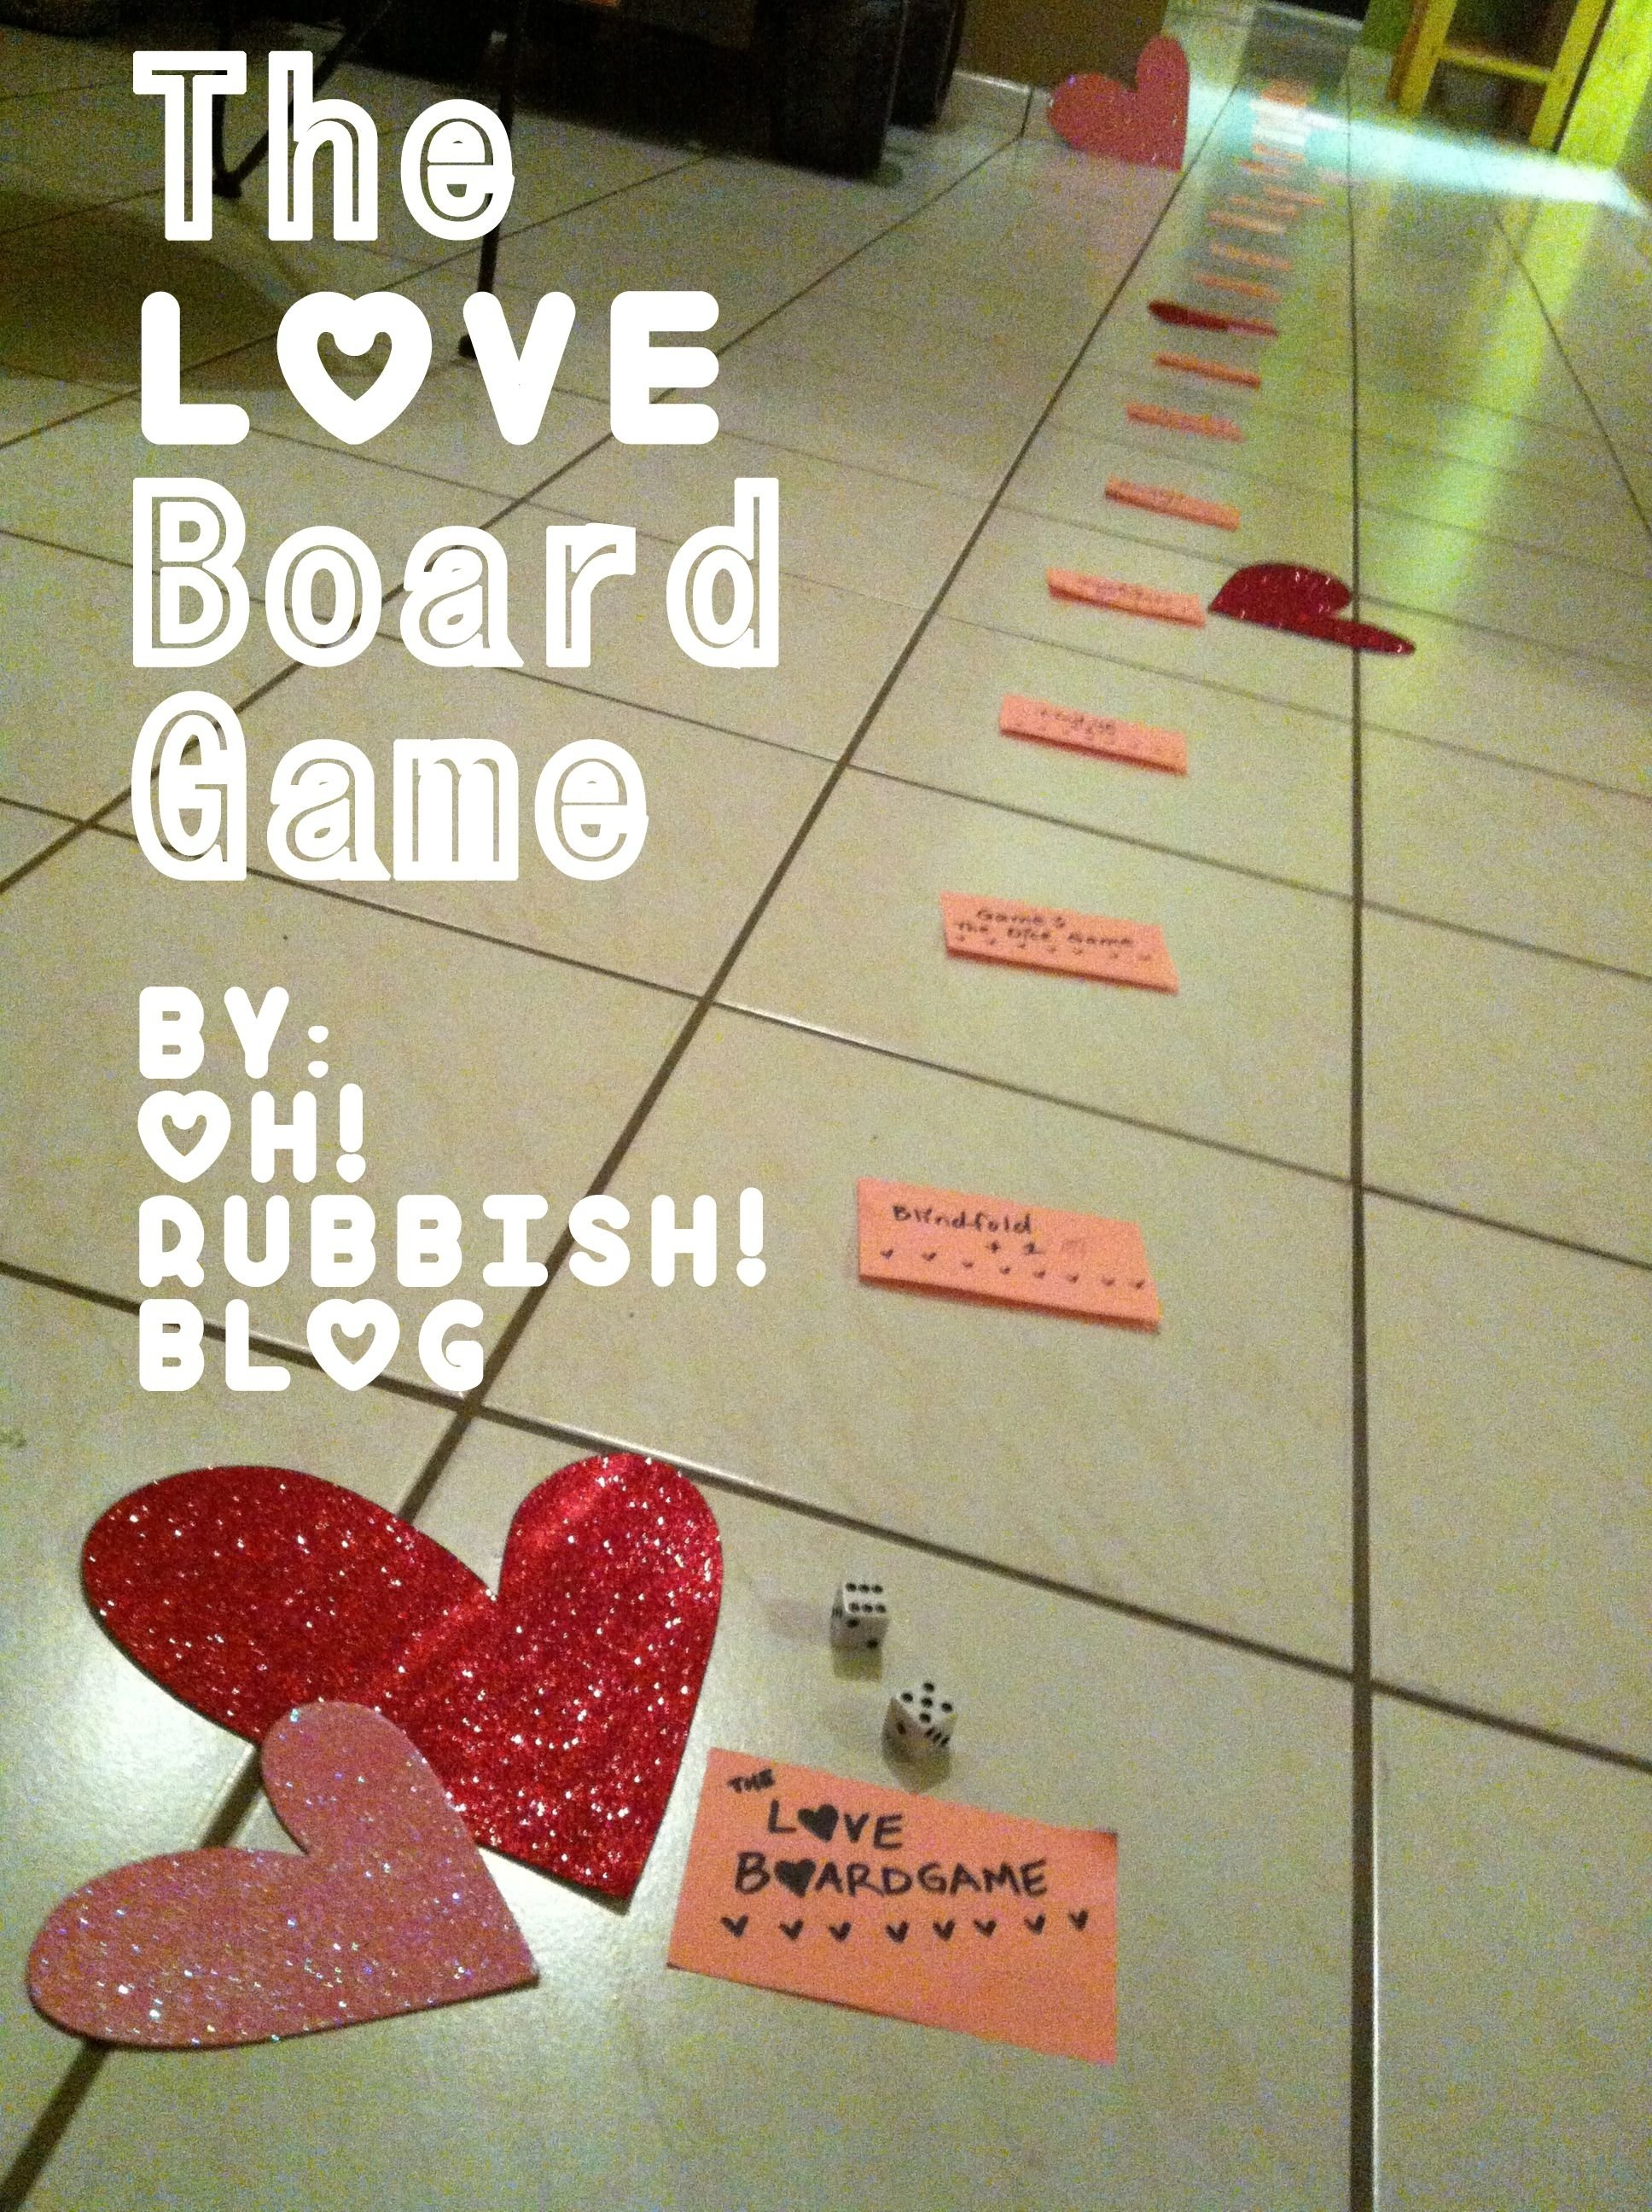 10 Trendy Valentine Day Gift Ideas For Him the love board game valentine game for couples valentine day 16 2020